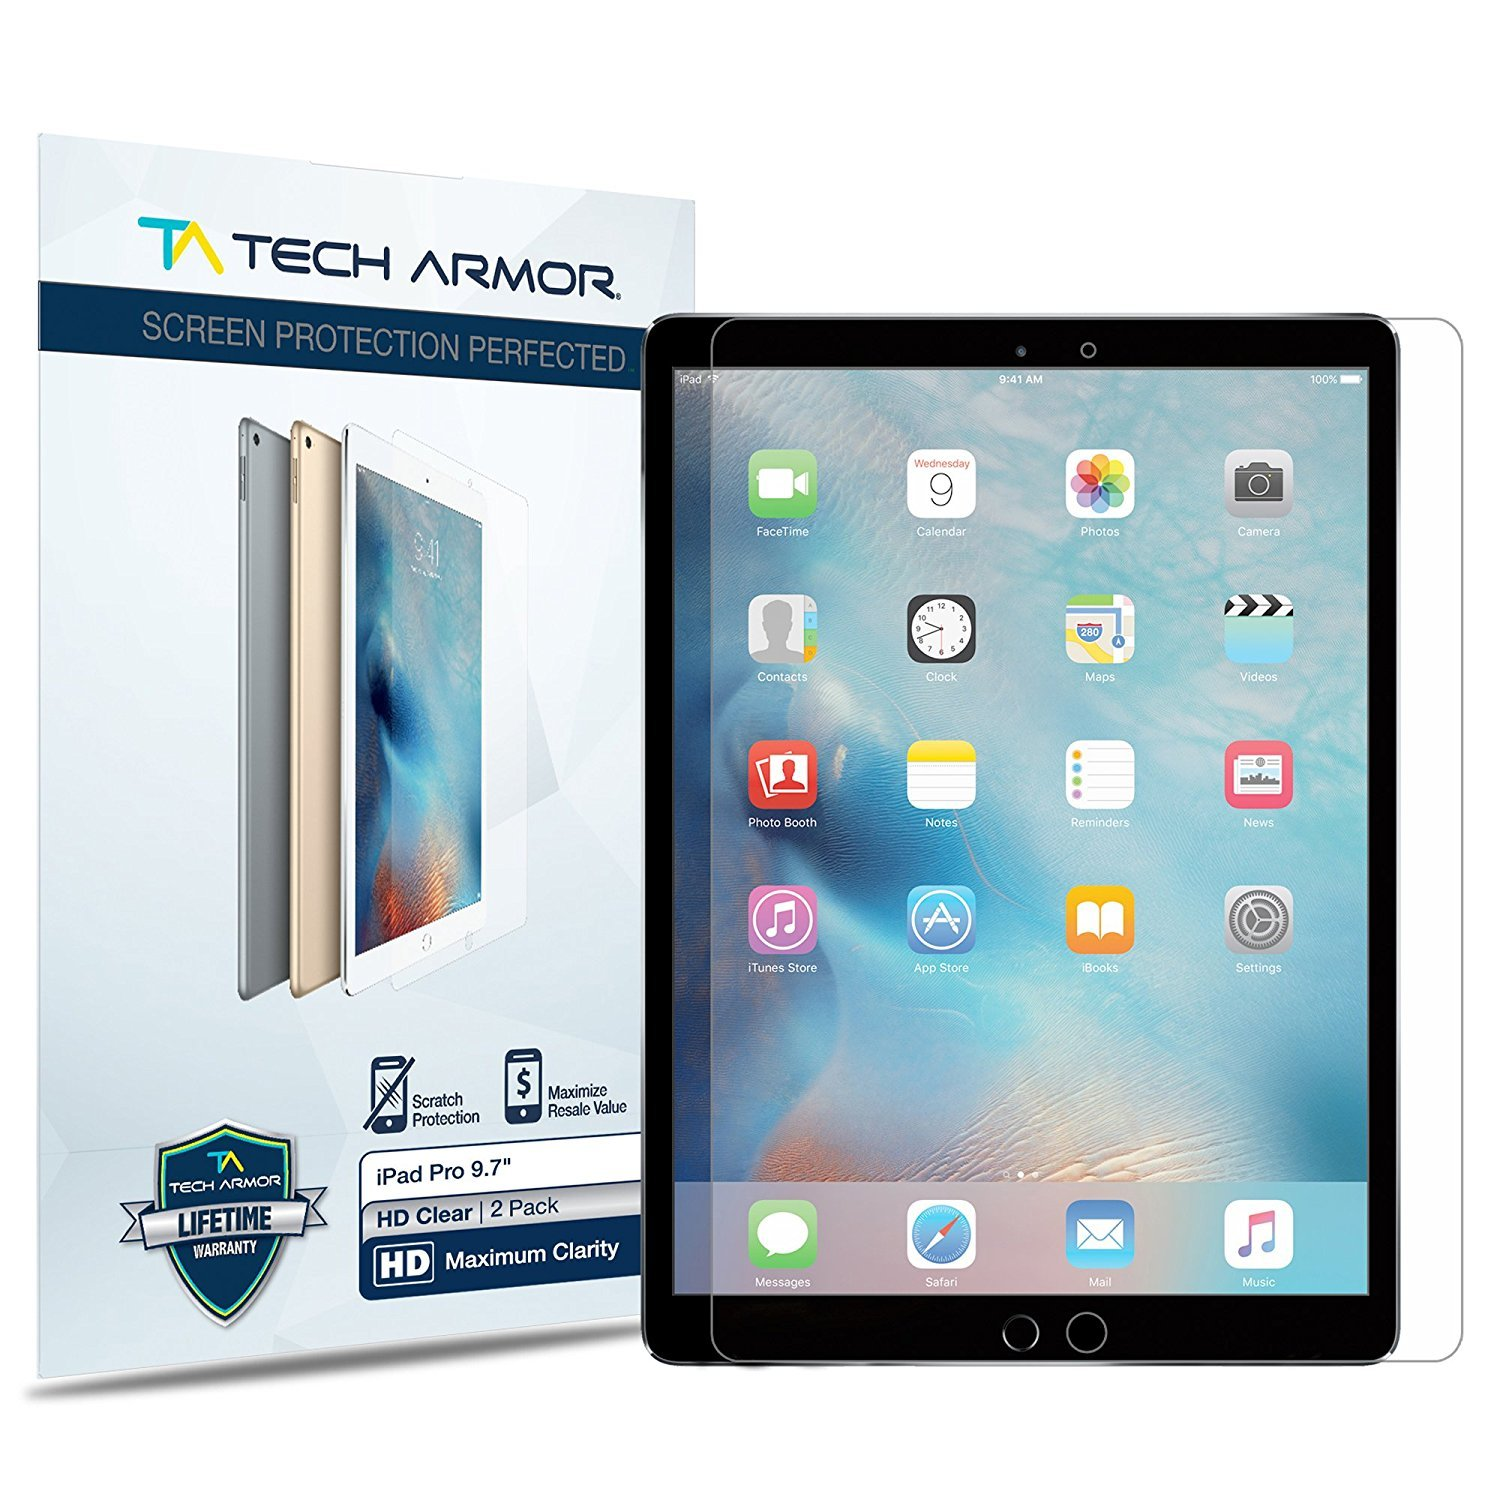 Tech Armor iPad Pro 9.7-inch (2016/2017) Screen Protector, High Definition HD-Clear Apple iPad Pro 9.7-inch Film Screen Protector [2-Pack]